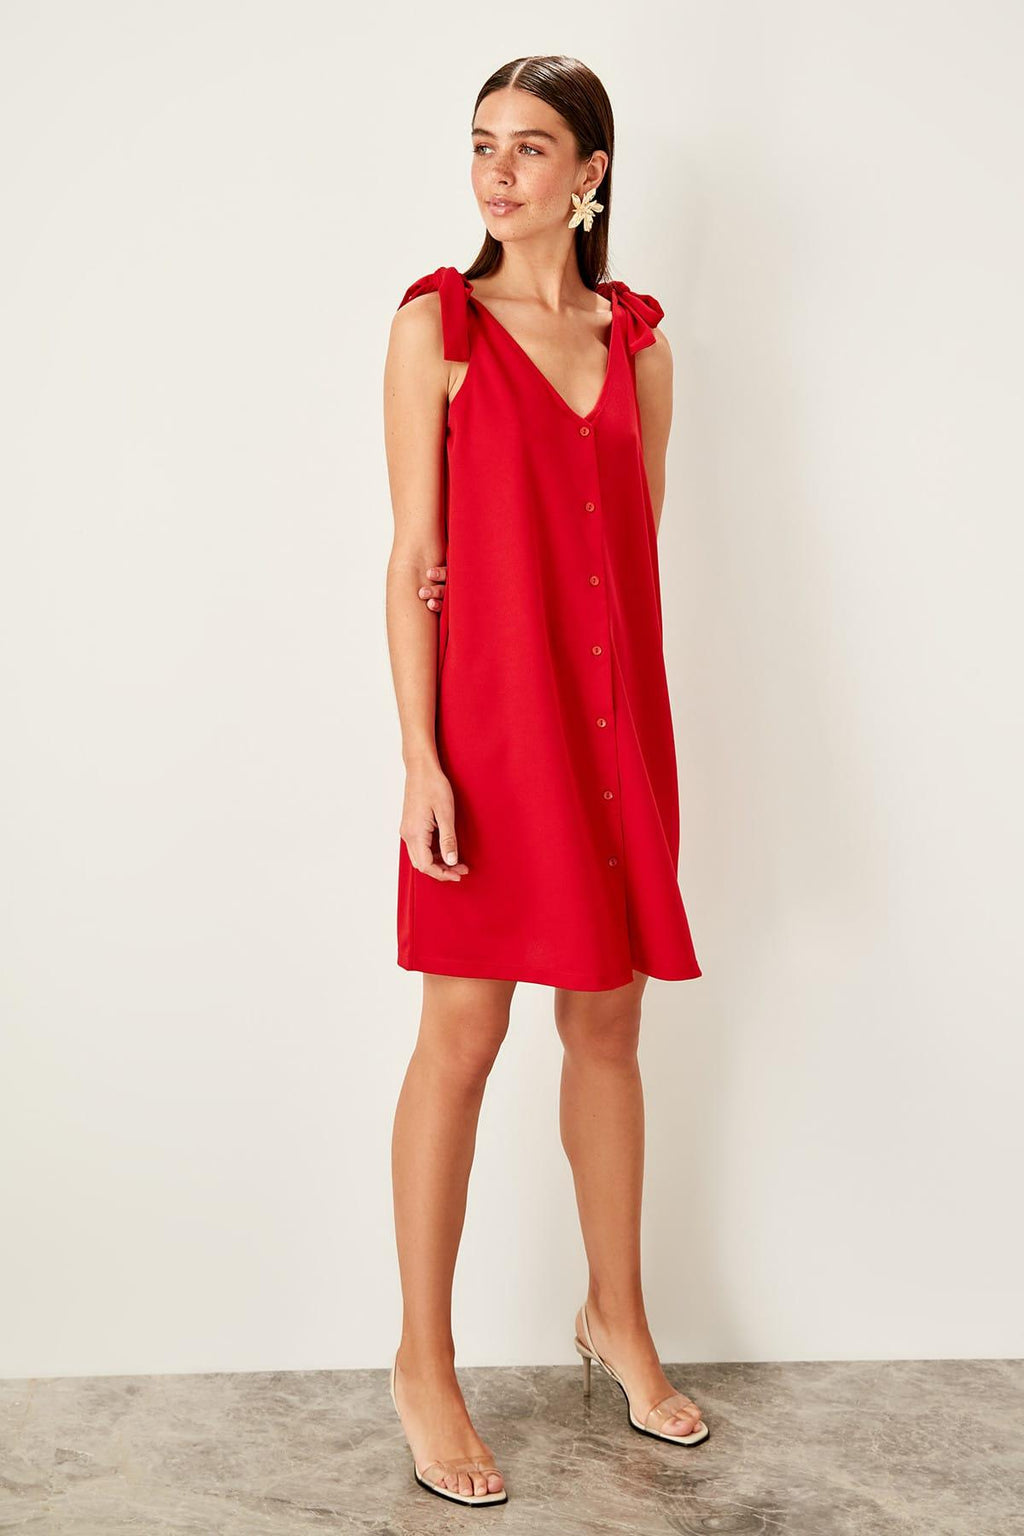 Red Lacing Detailed Knit Dress - emuuz.com